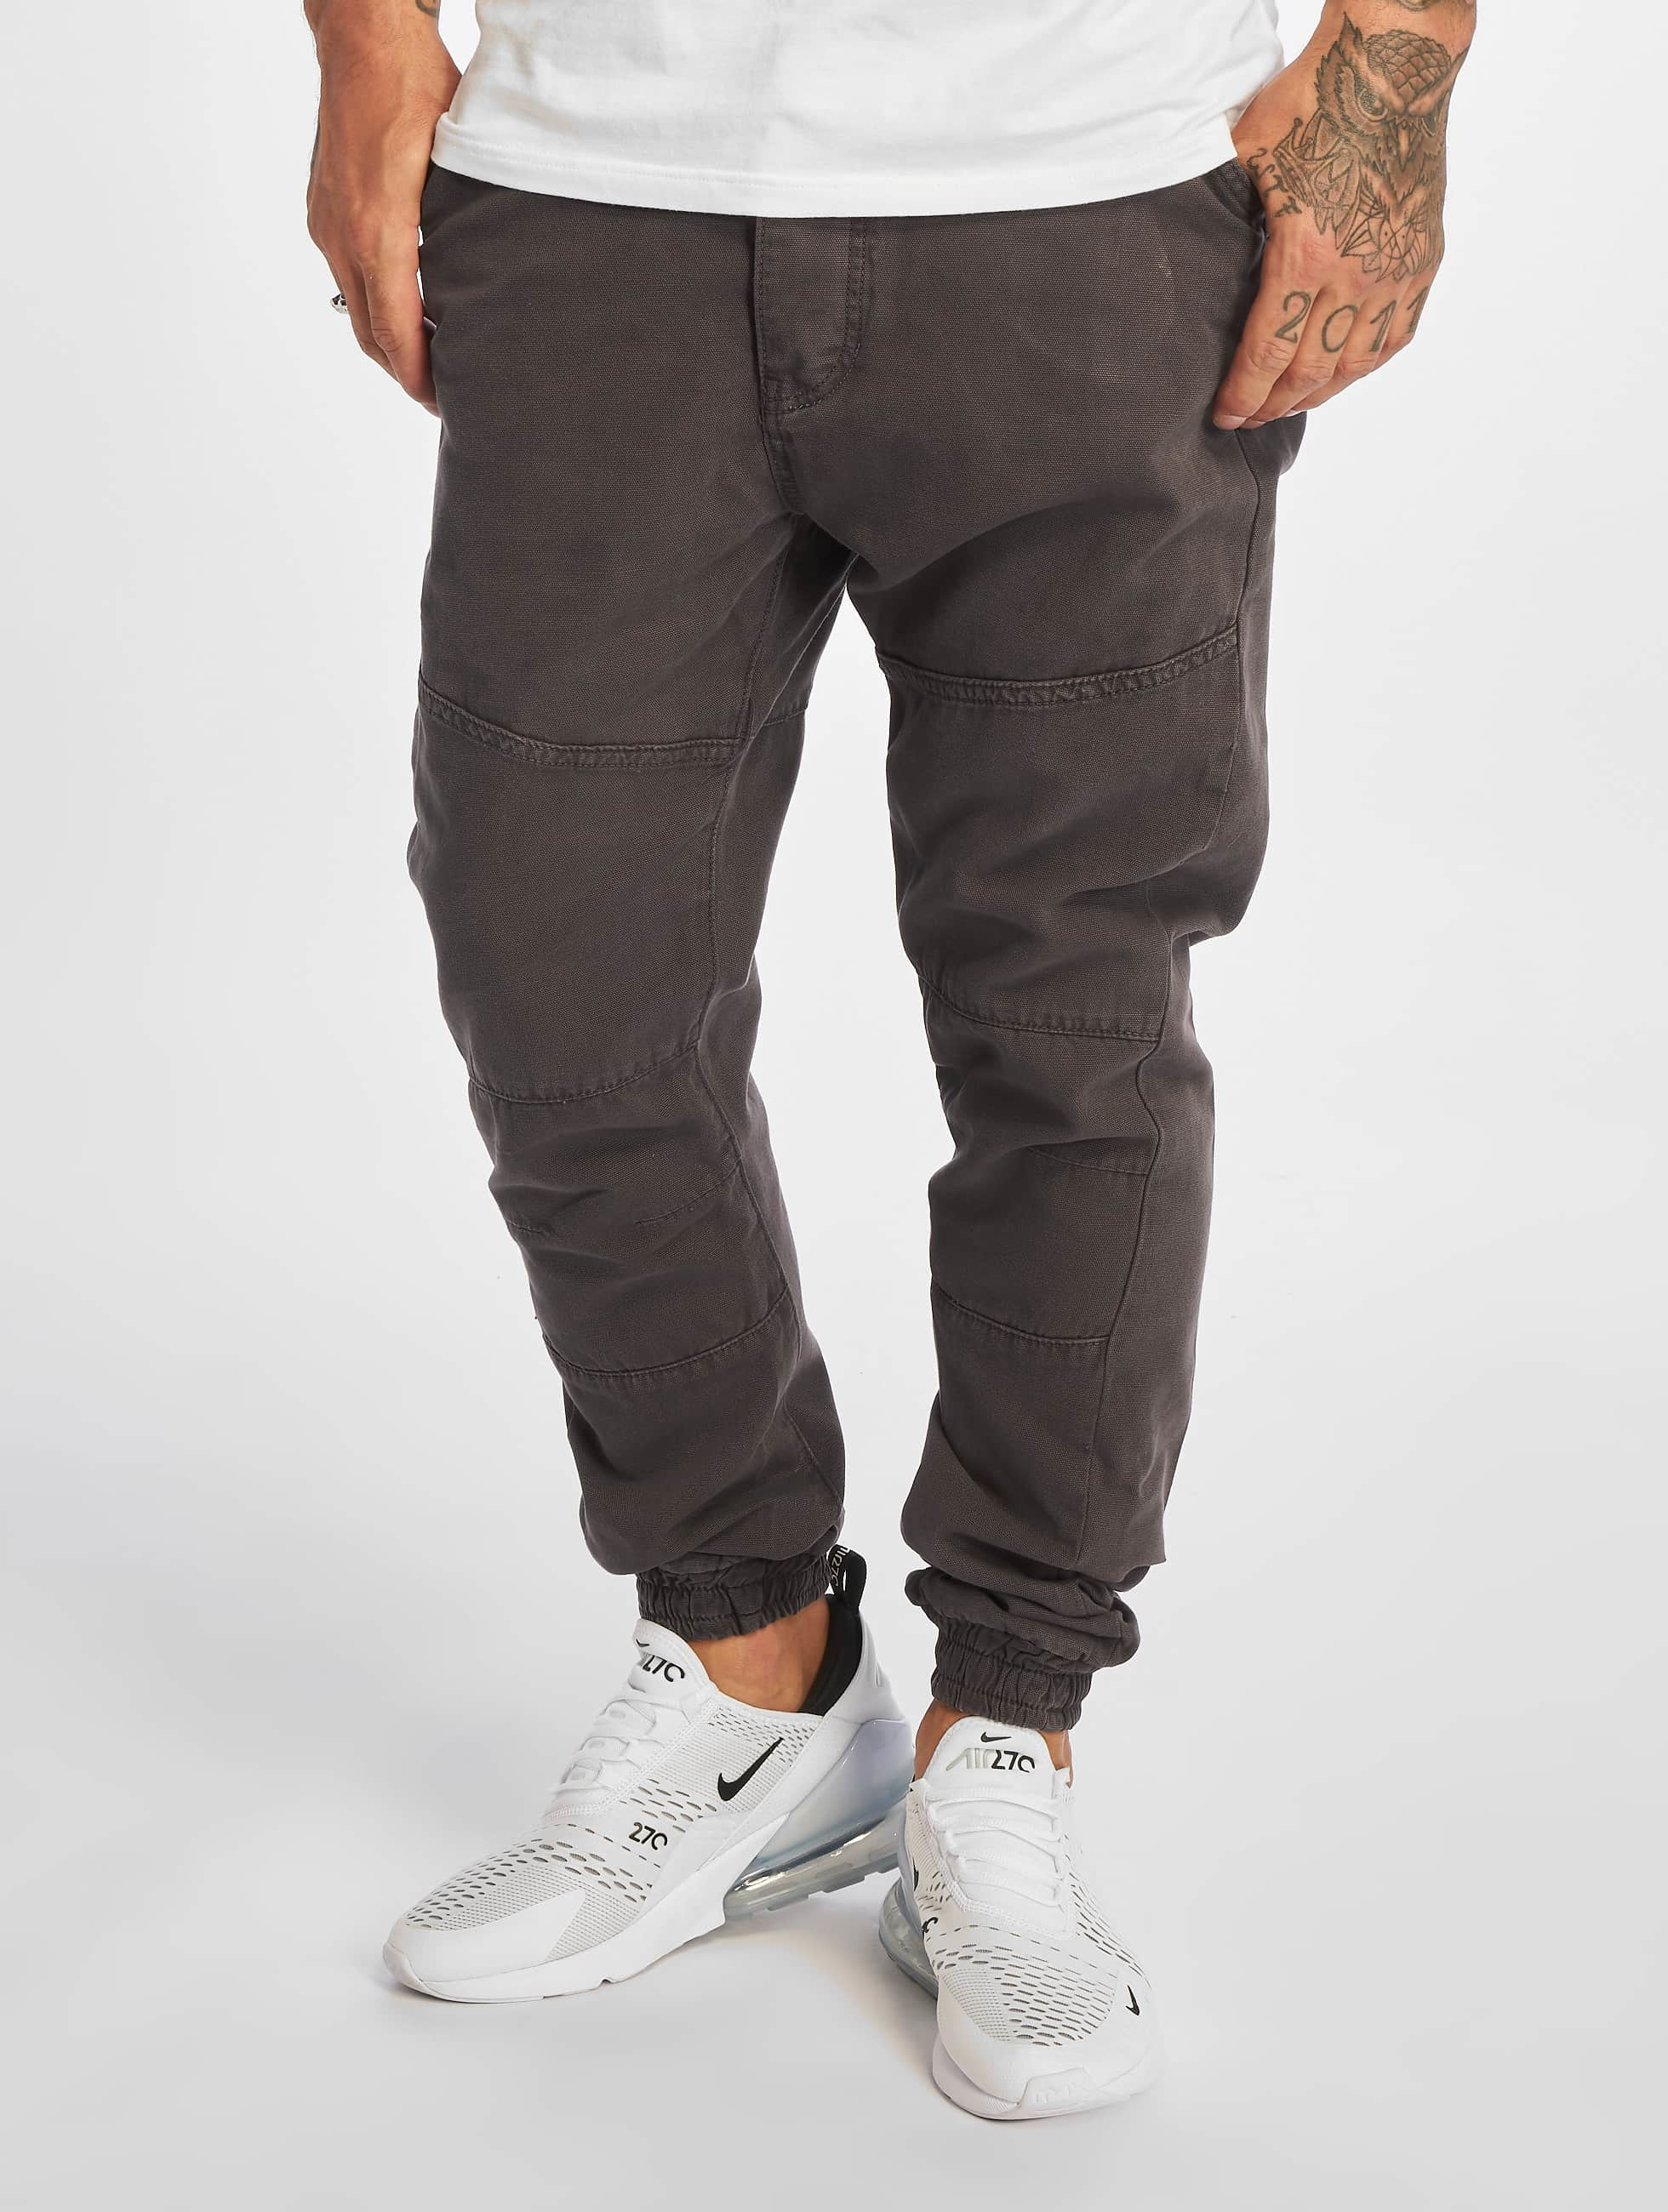 Just Rhyse / Cargo Börge in grey W 34